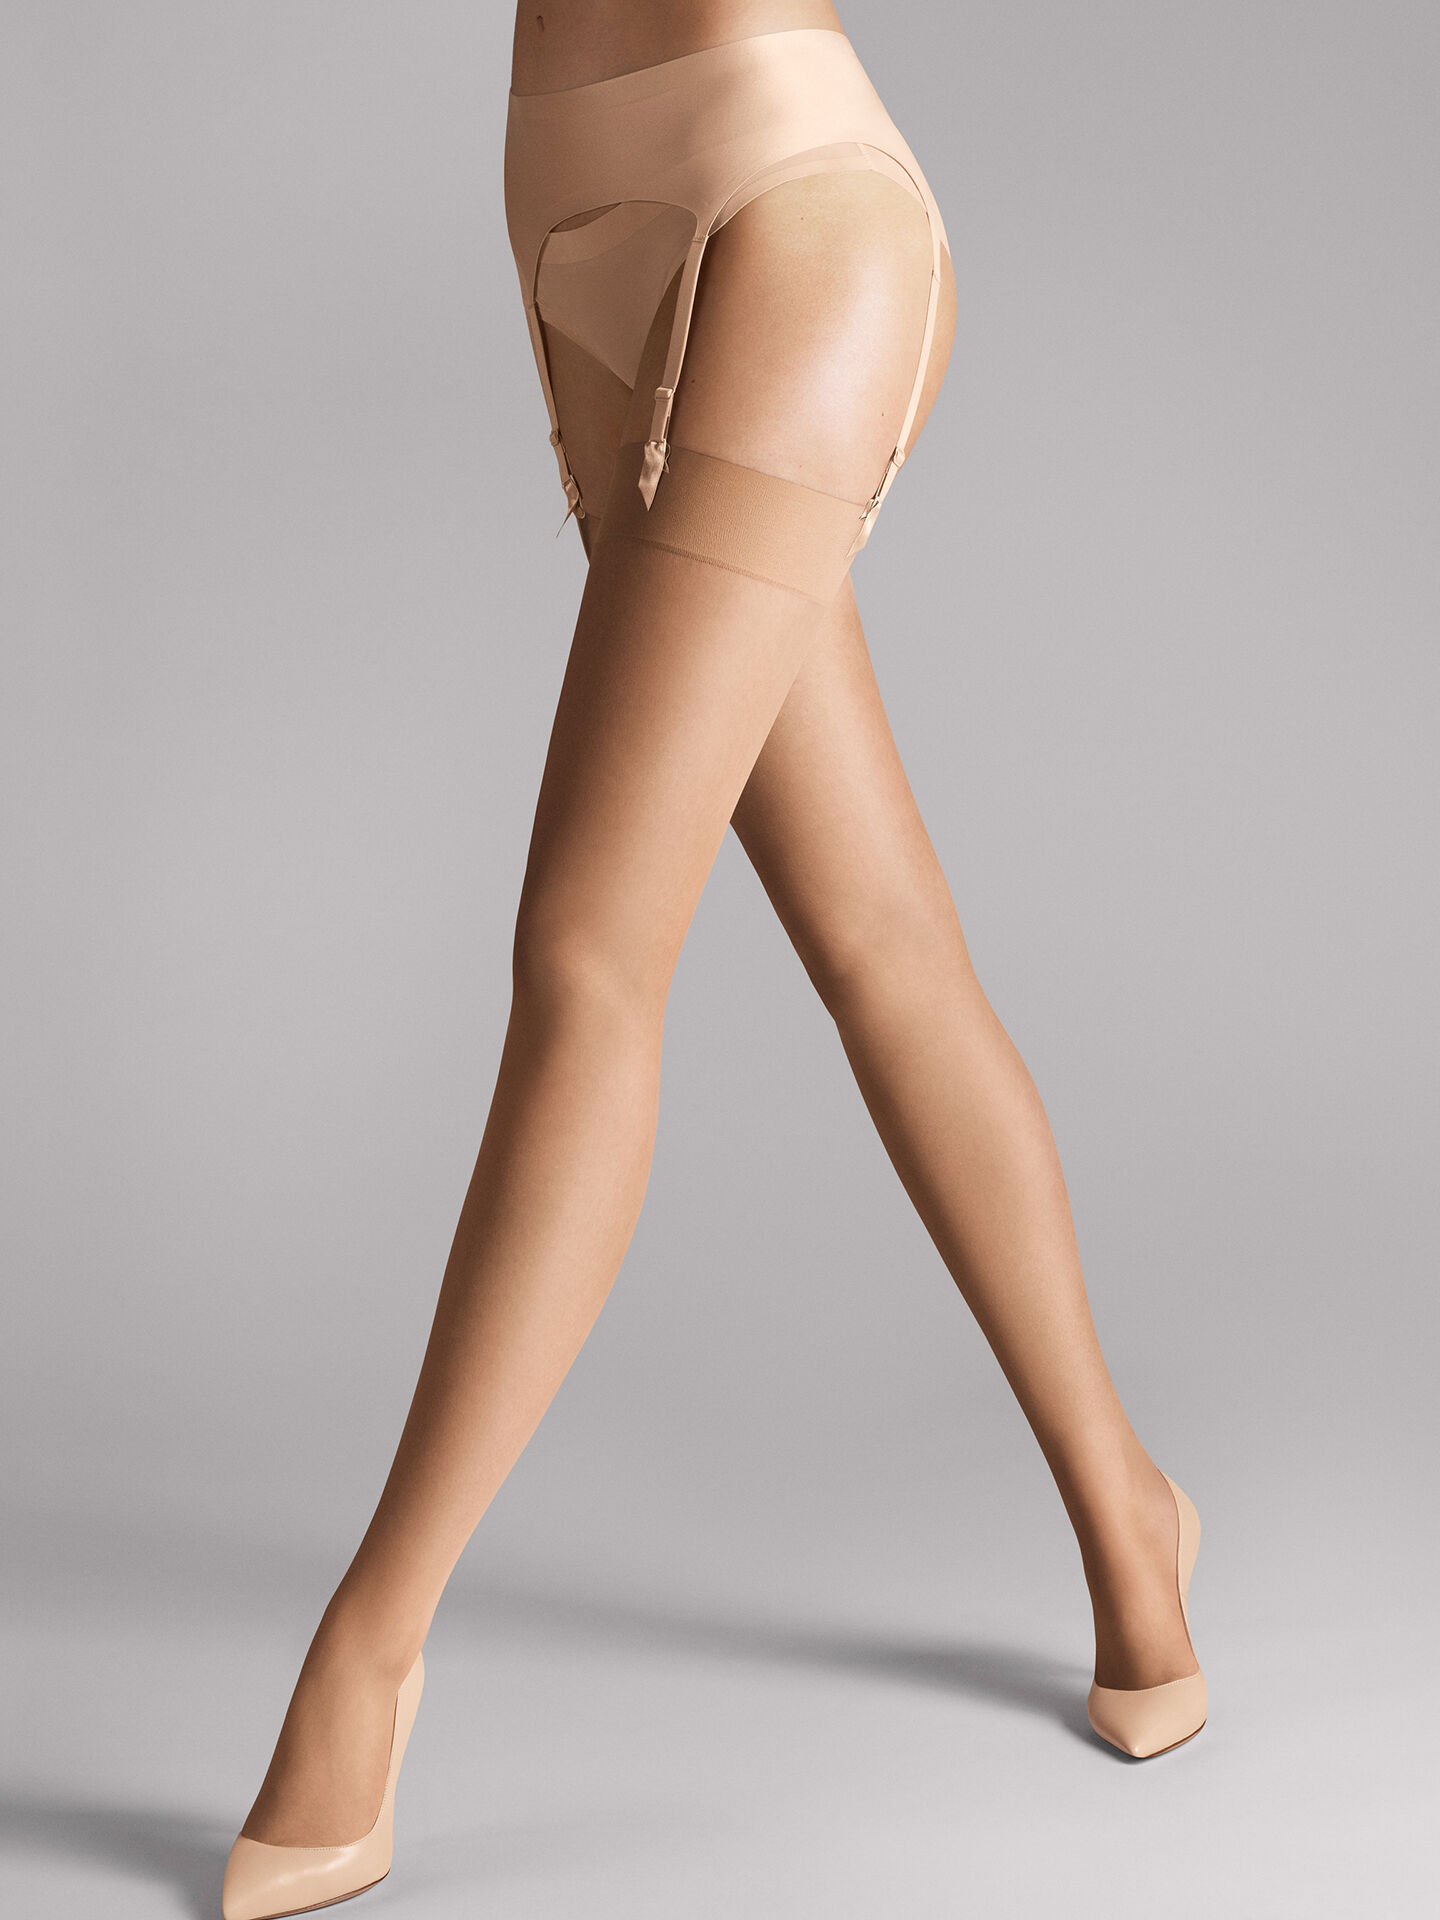 also individual stocking wolford rh wolfordshop